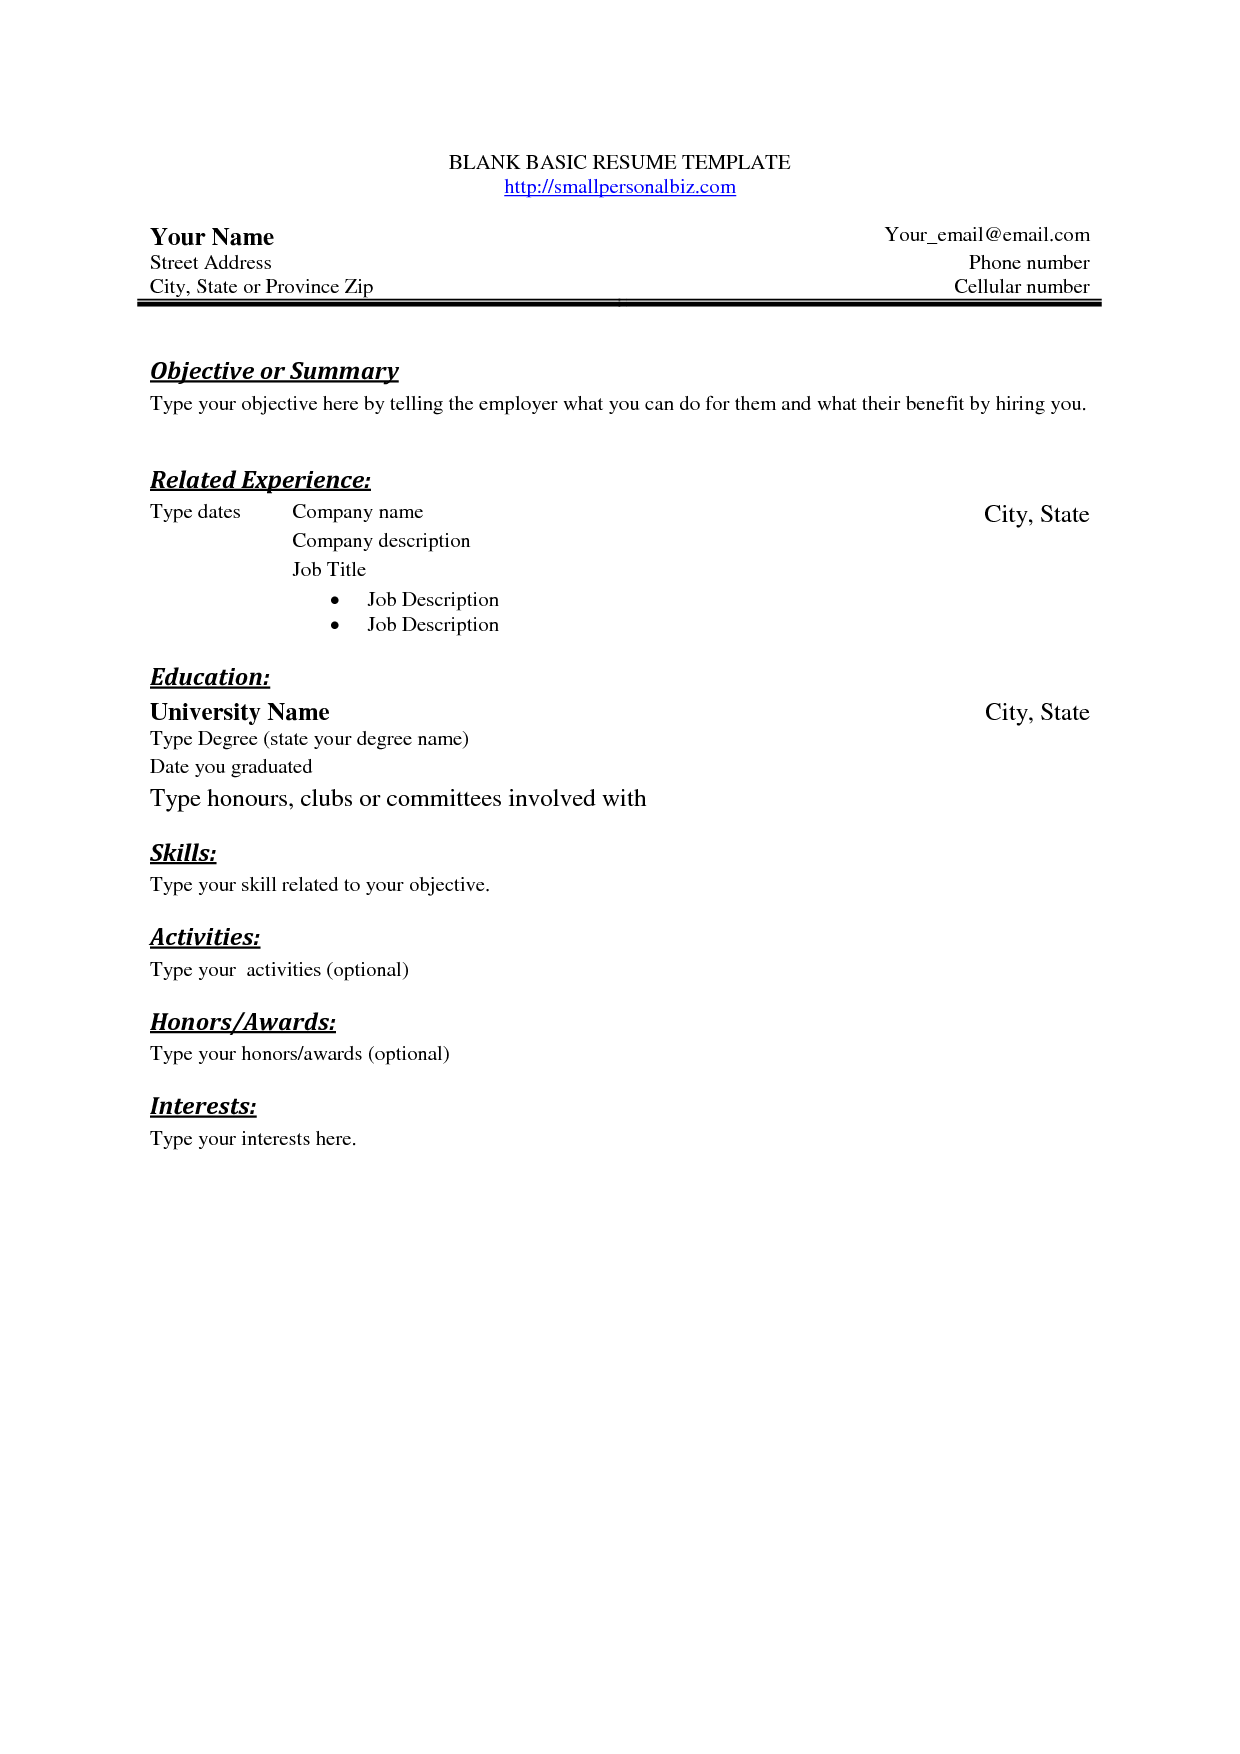 Stylist And Luxury Simple Resume Layout 10 Free Basic Blank  Simple Resume Layout